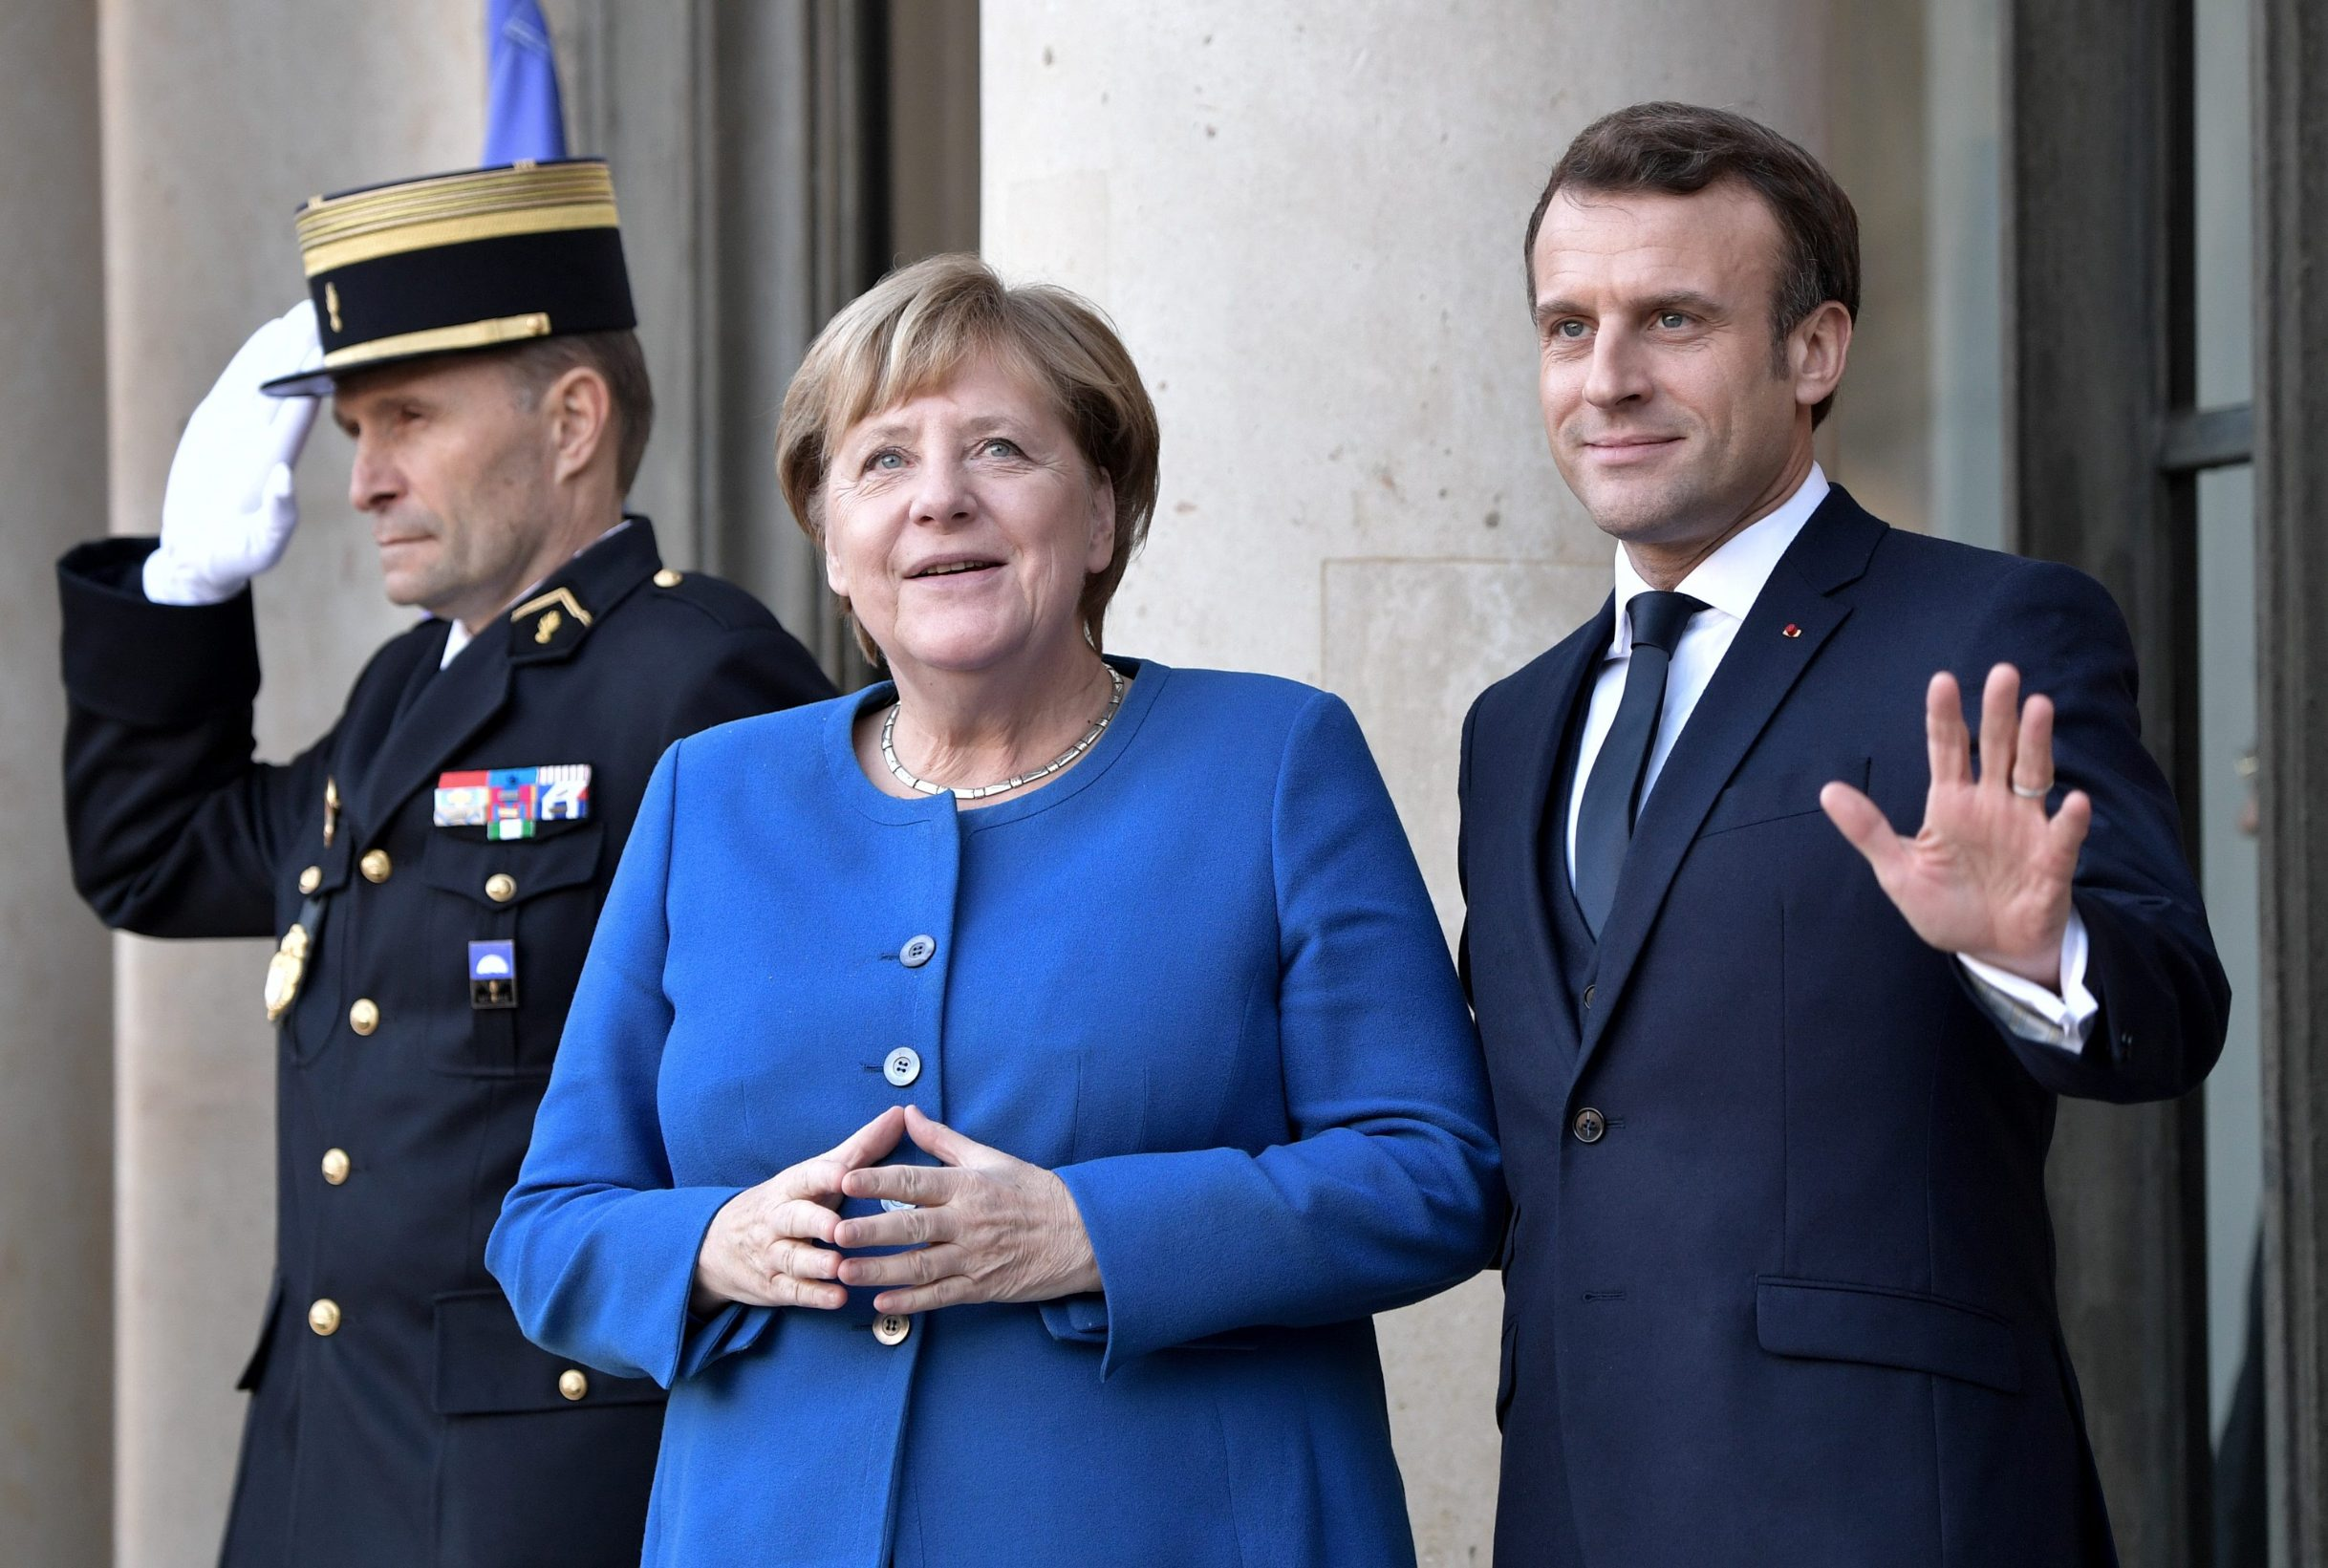 German Chancellor Angela Merkel and French President Emmanuel Macron pose for a picture during their meeting ahead of a Normandy-format summit in Paris, France December 9, 2019. Sputnik/Alexey Nikolsky/Kremlin via REUTERS ATTENTION EDITORS - THIS IMAGE WAS PROVIDED BY A THIRD PARTY.